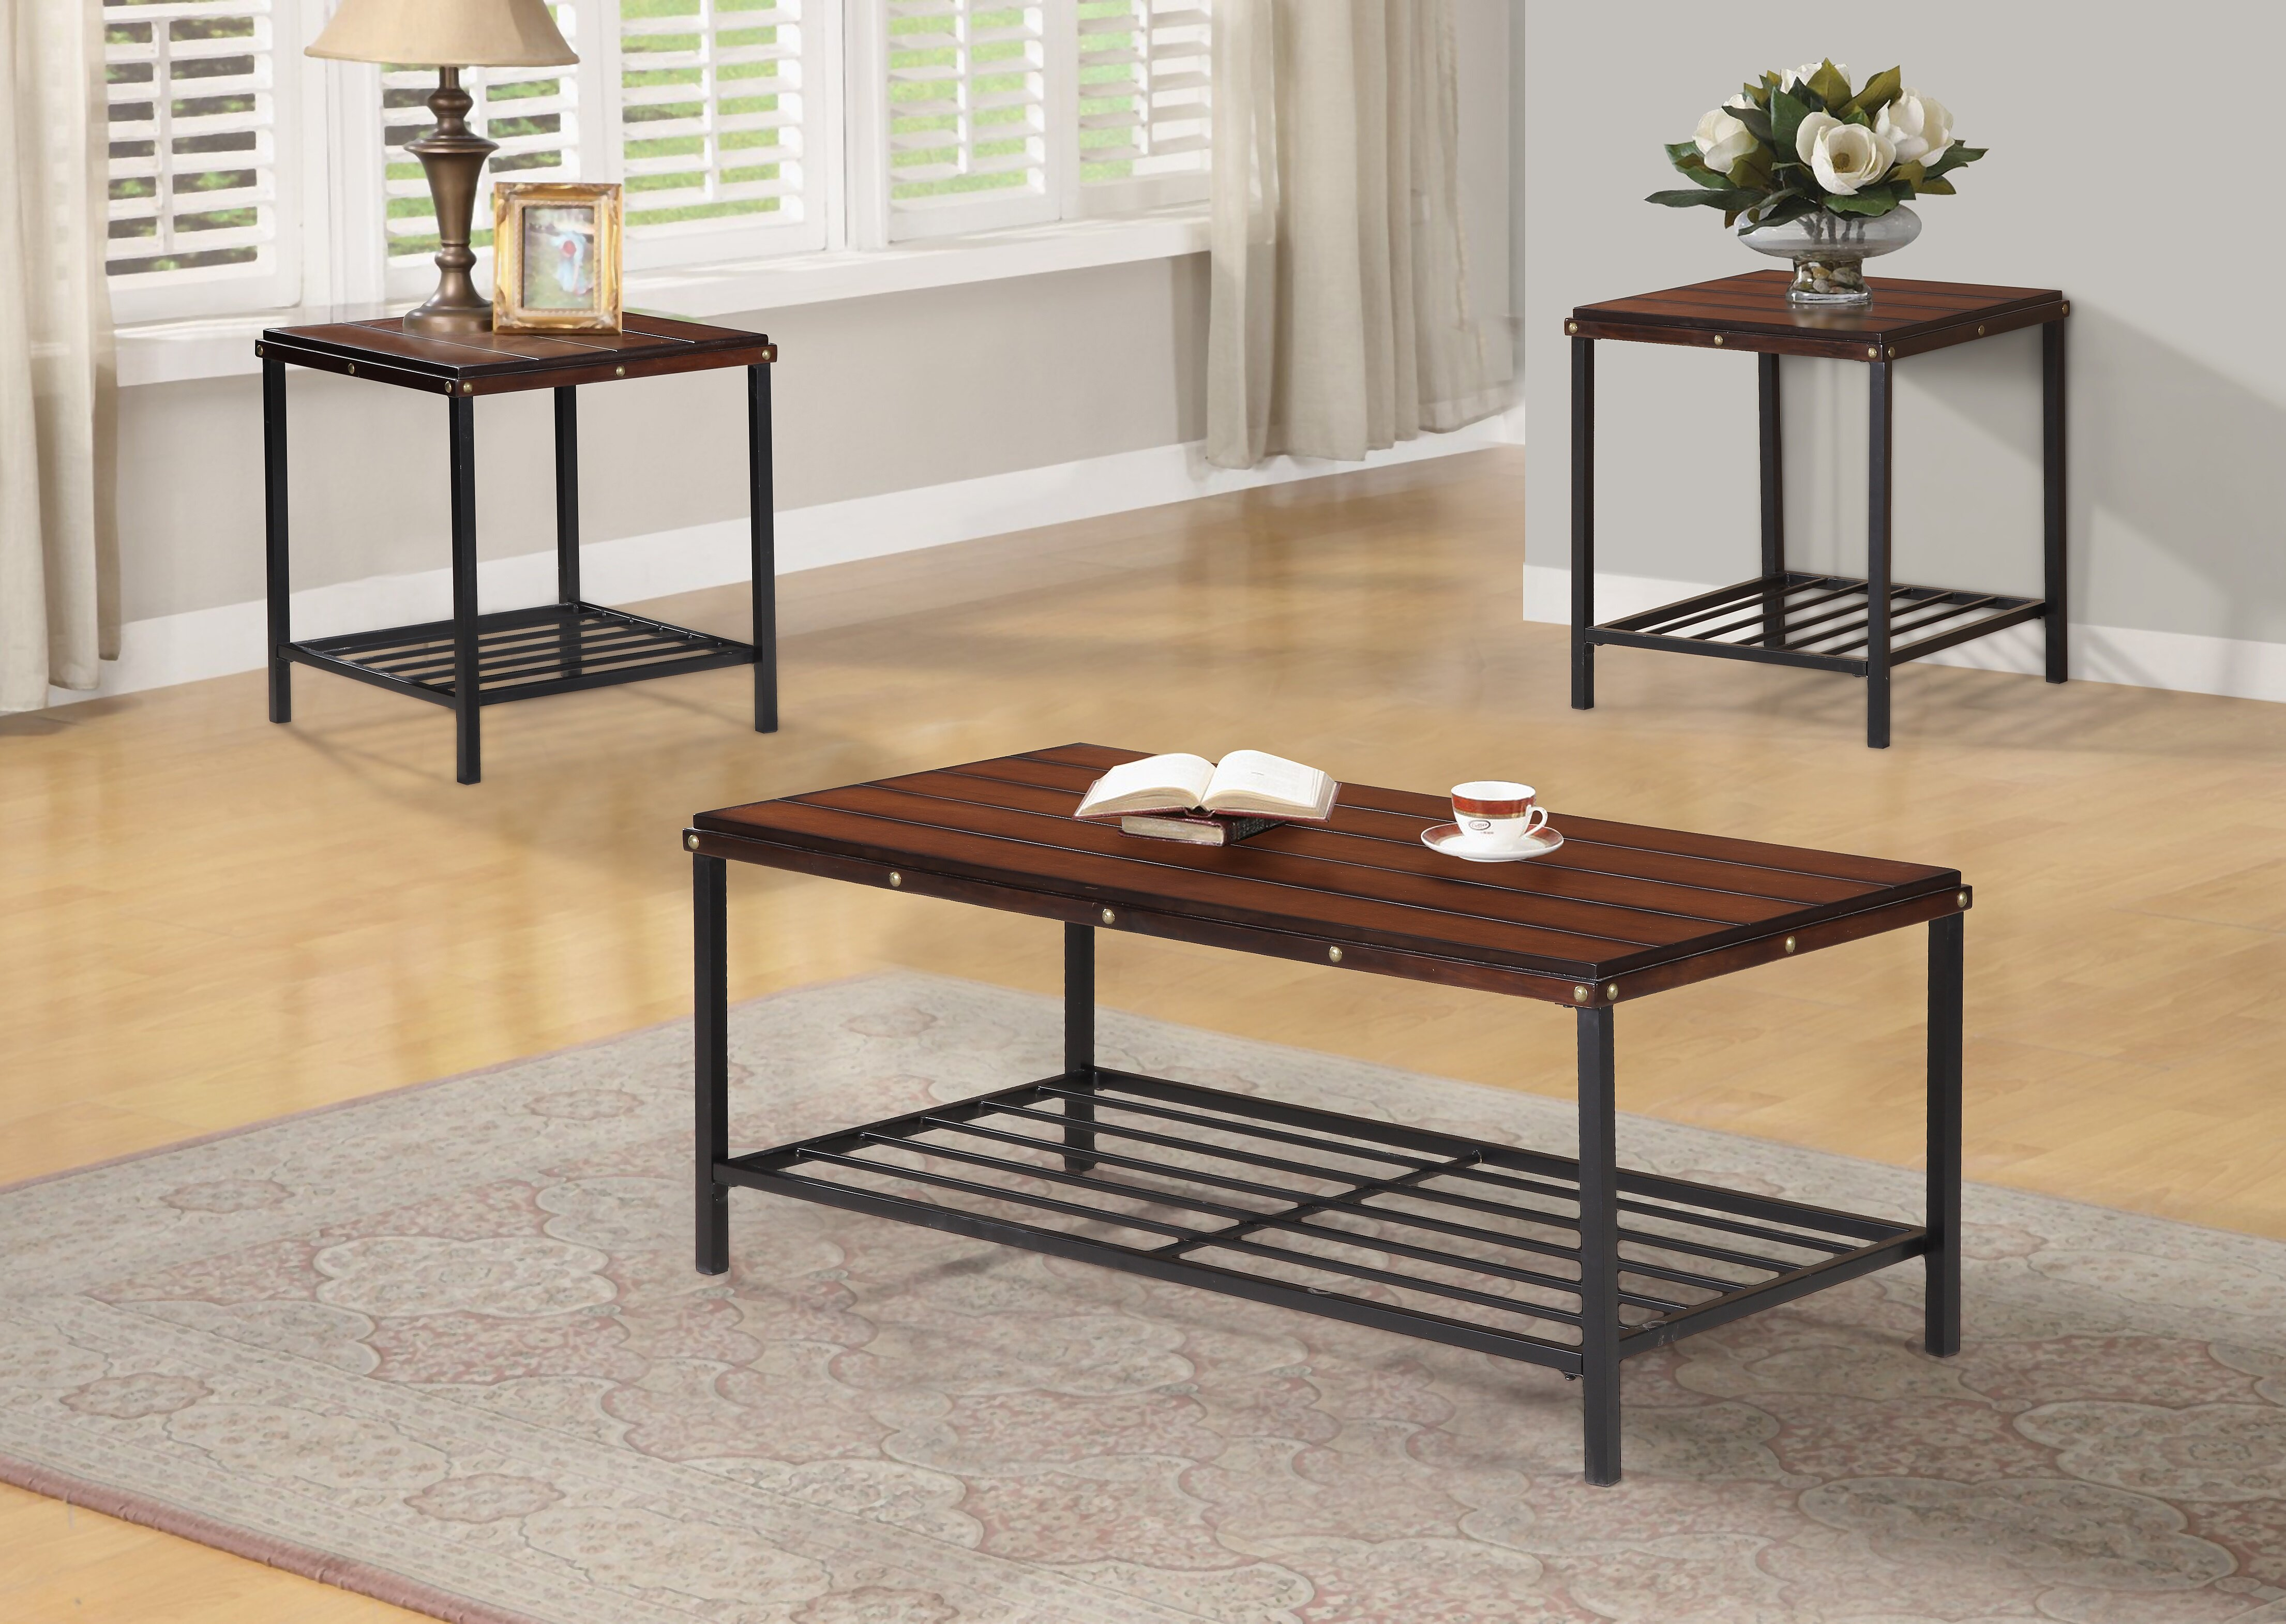 Fabulous Sebring 3 Piece Coffee Table Set Caraccident5 Cool Chair Designs And Ideas Caraccident5Info